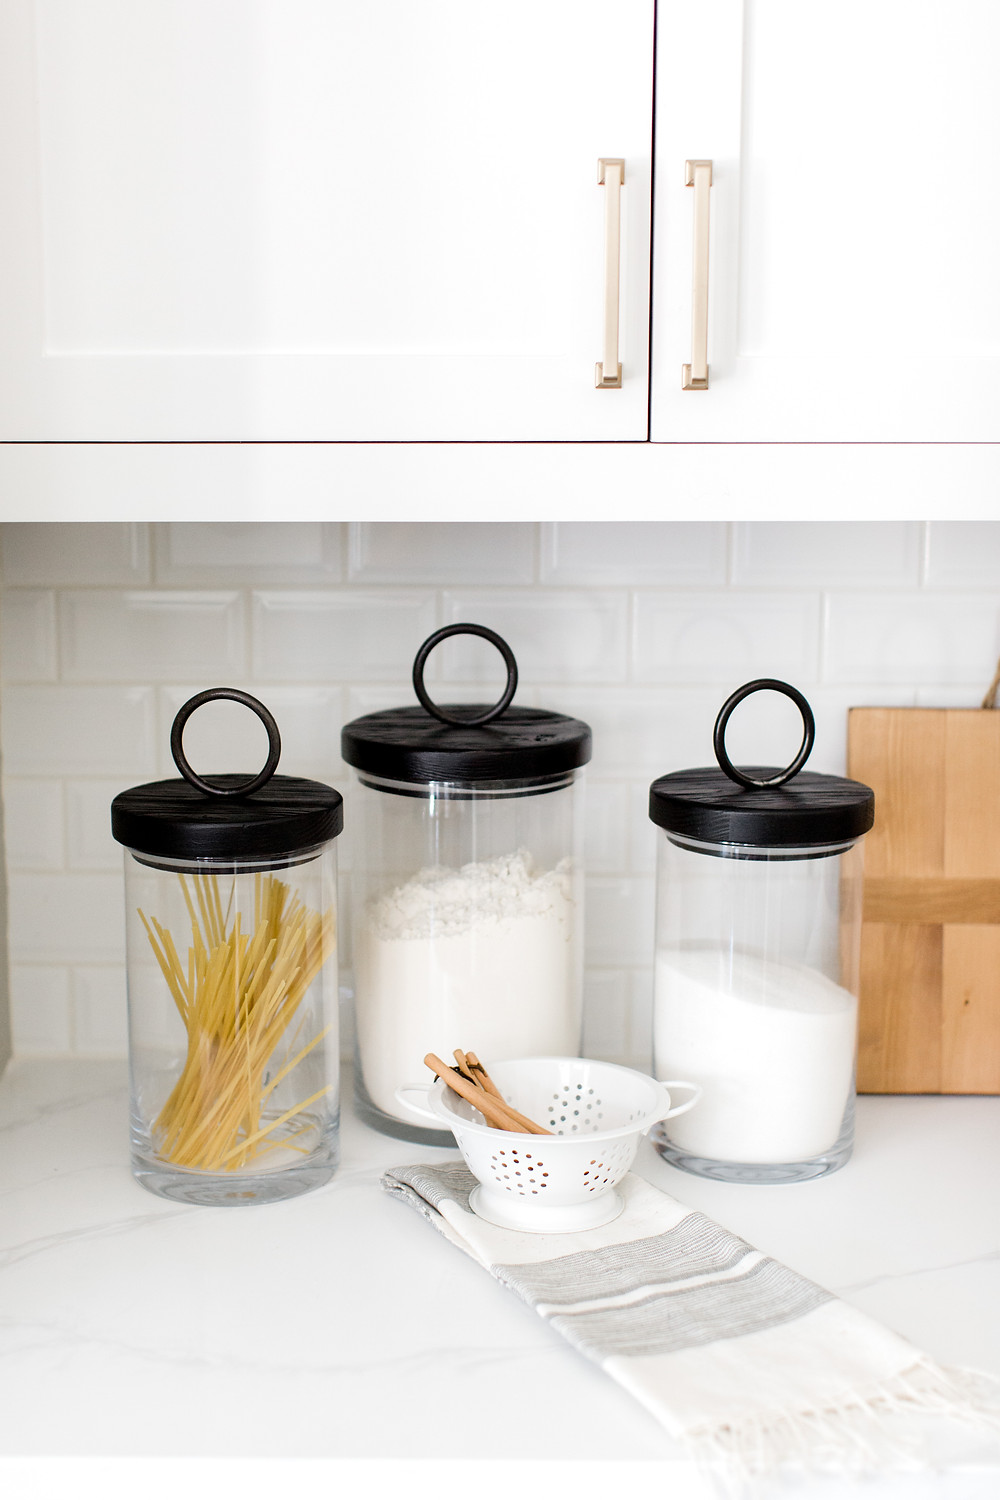 Metal lidded canister, kitchen design by Laura Design and Co, Dallas interior designer